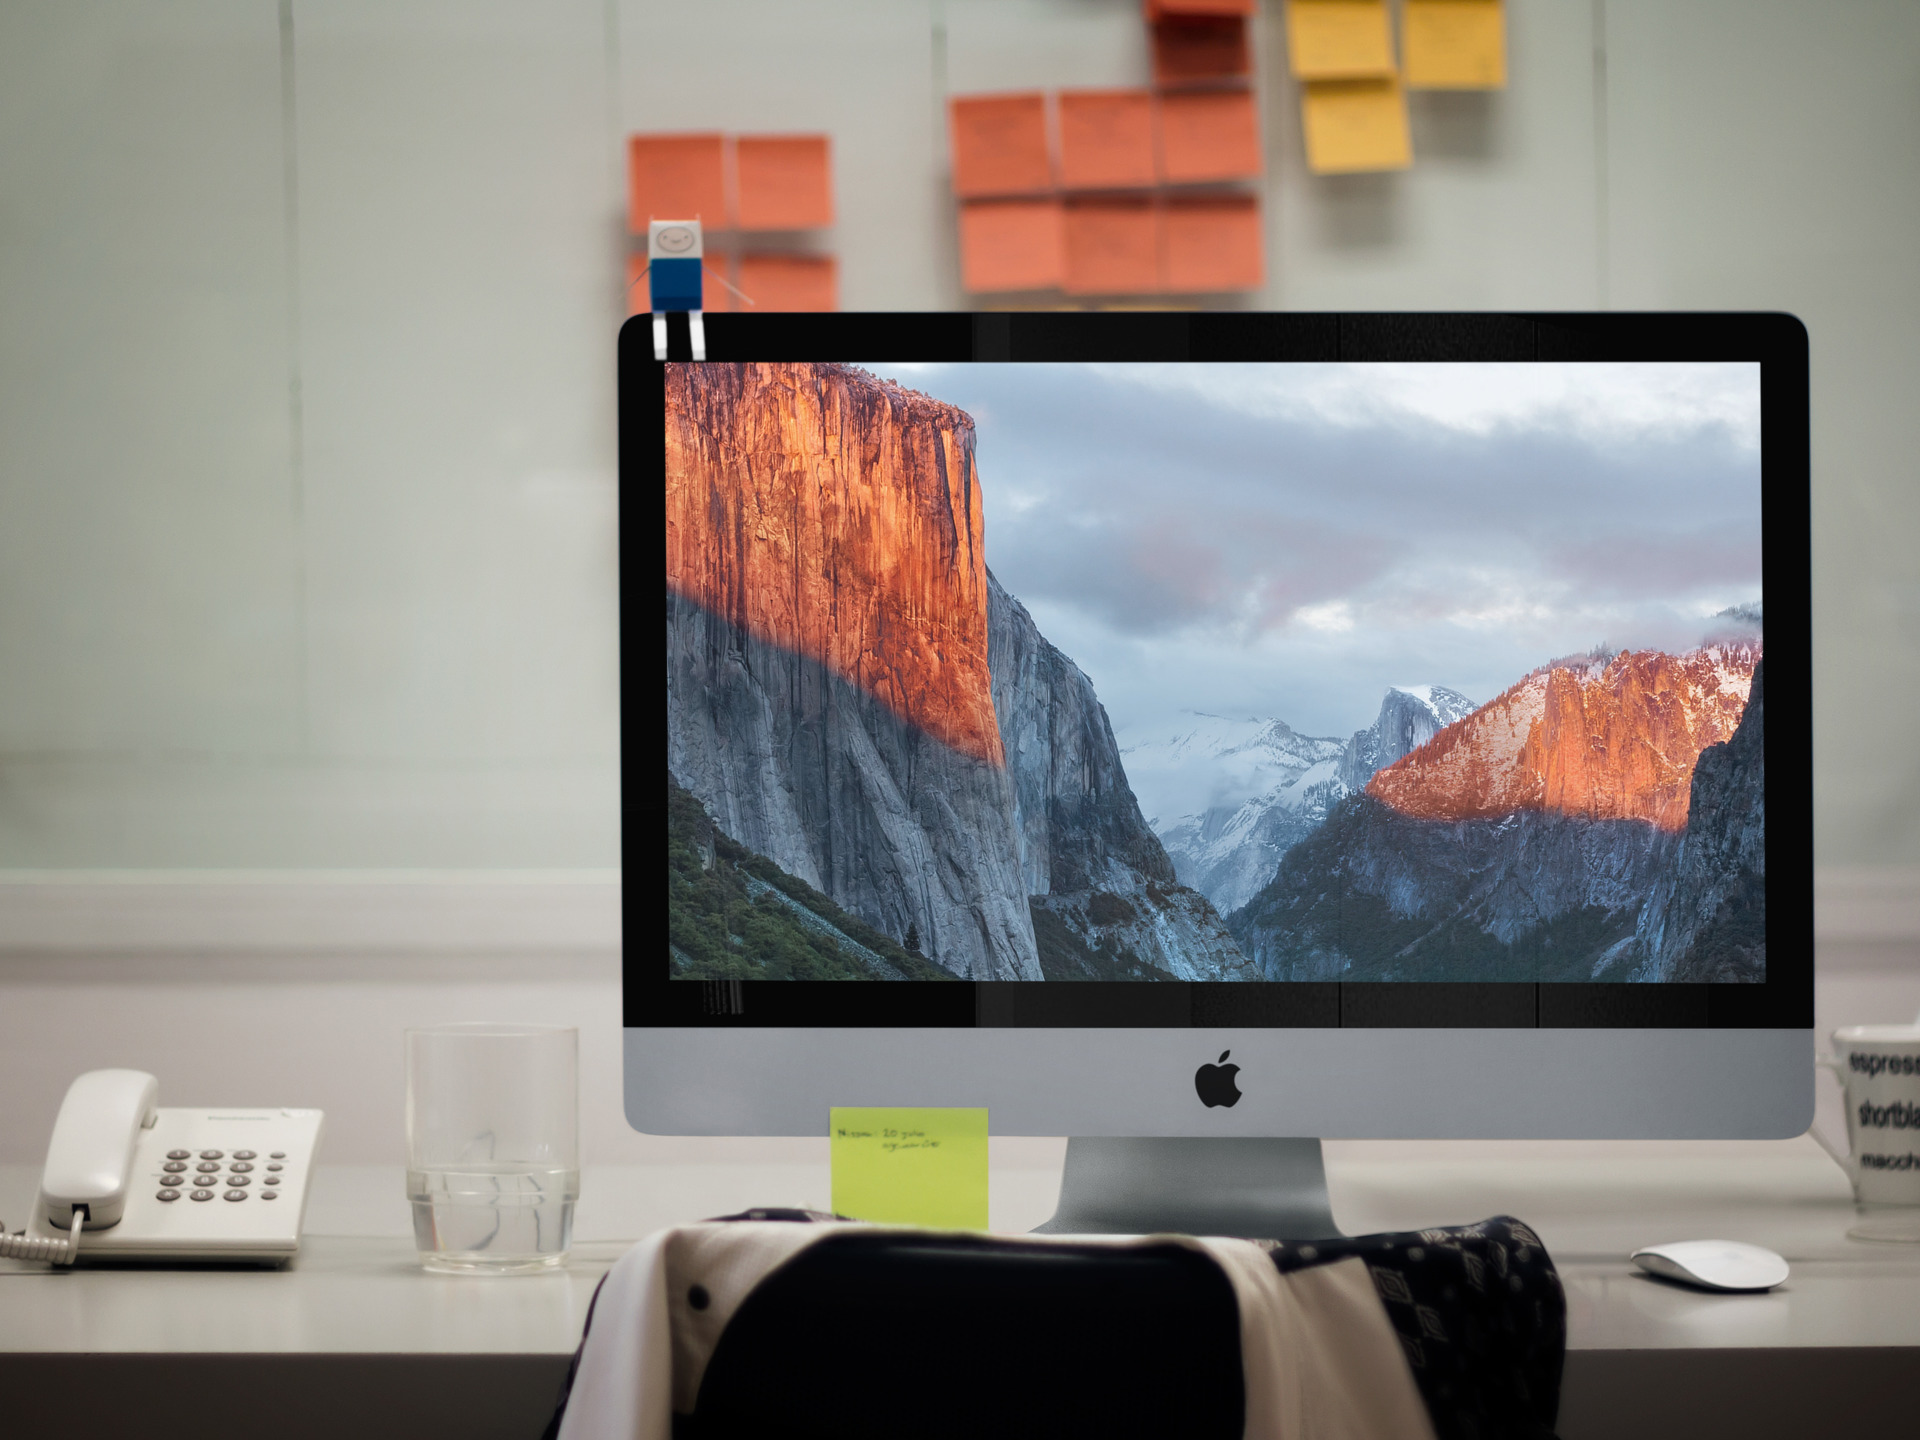 El Capitan wallpaper splash axinene